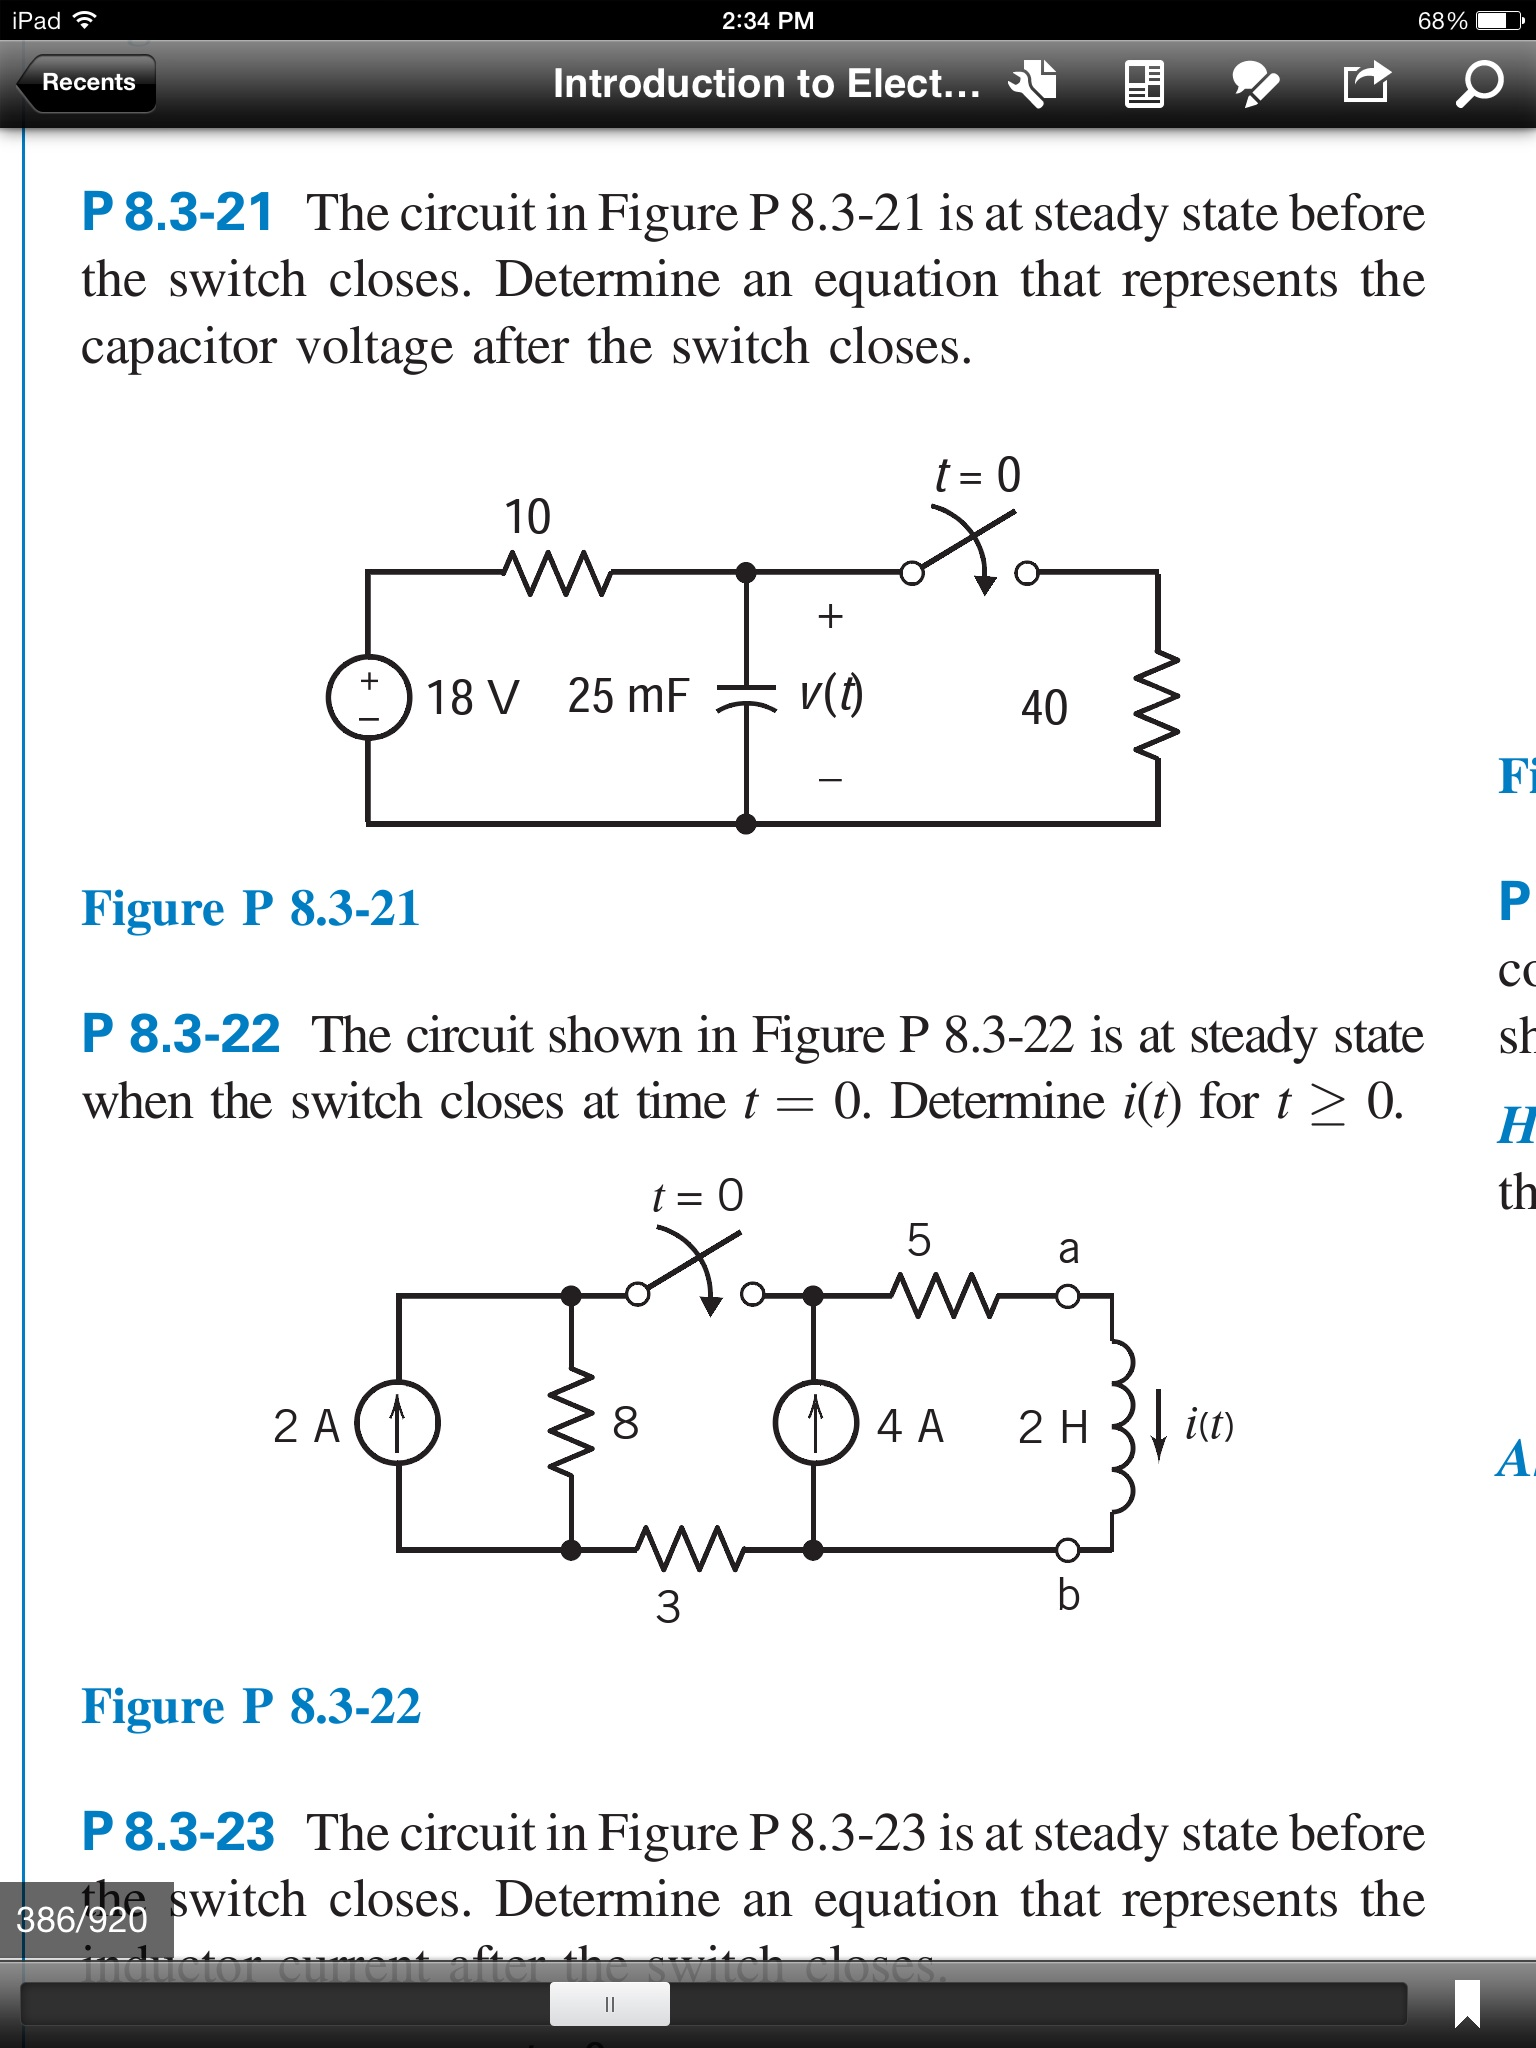 The circuit in Figure P 8.3-21 is at steady state